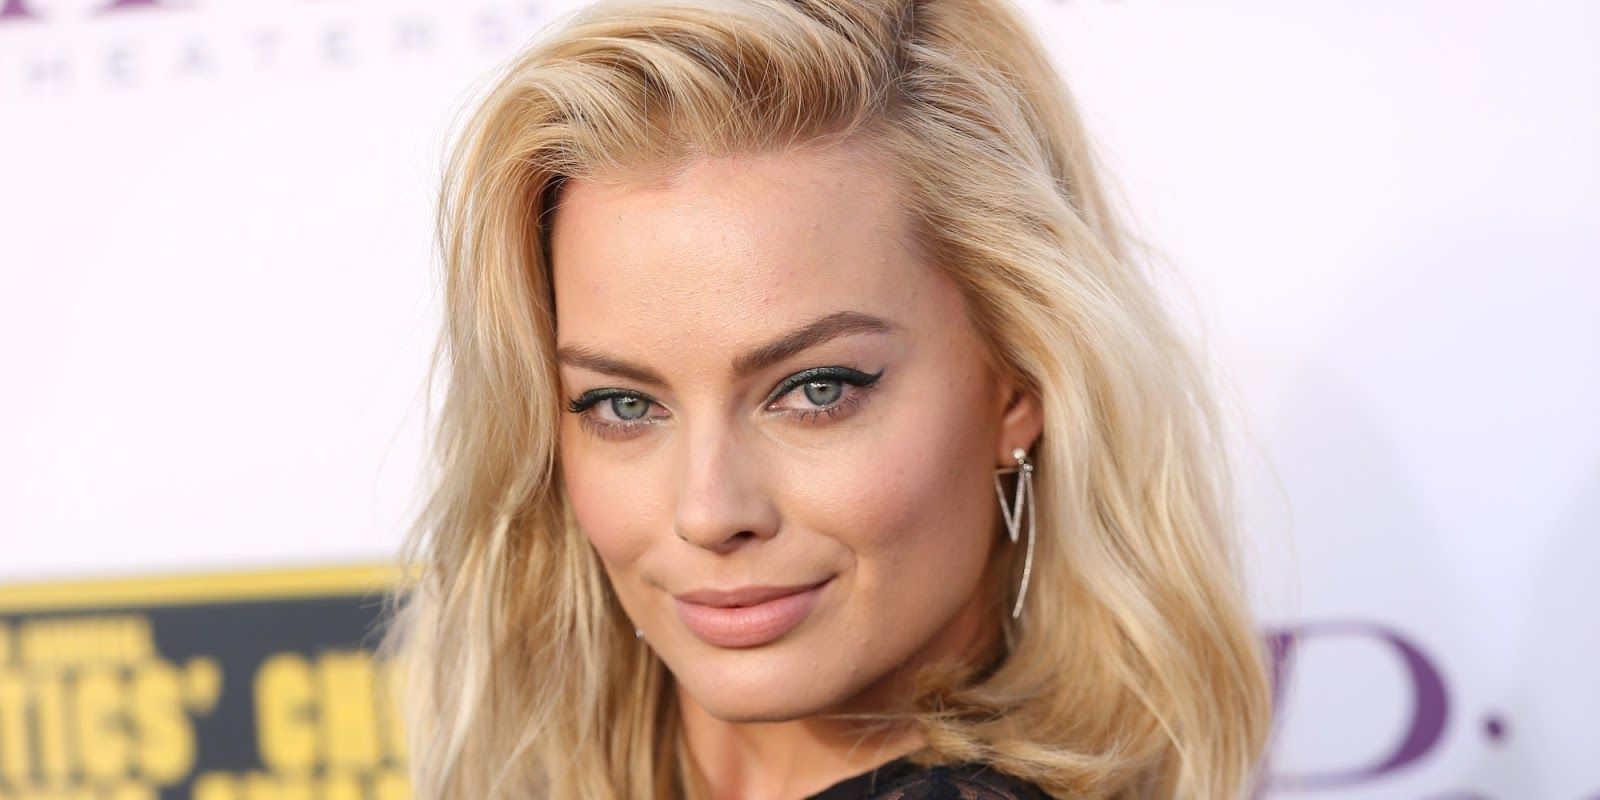 Top 30 Margot Robbie Sexy Photos, Pictures And Wallpaper Download ...